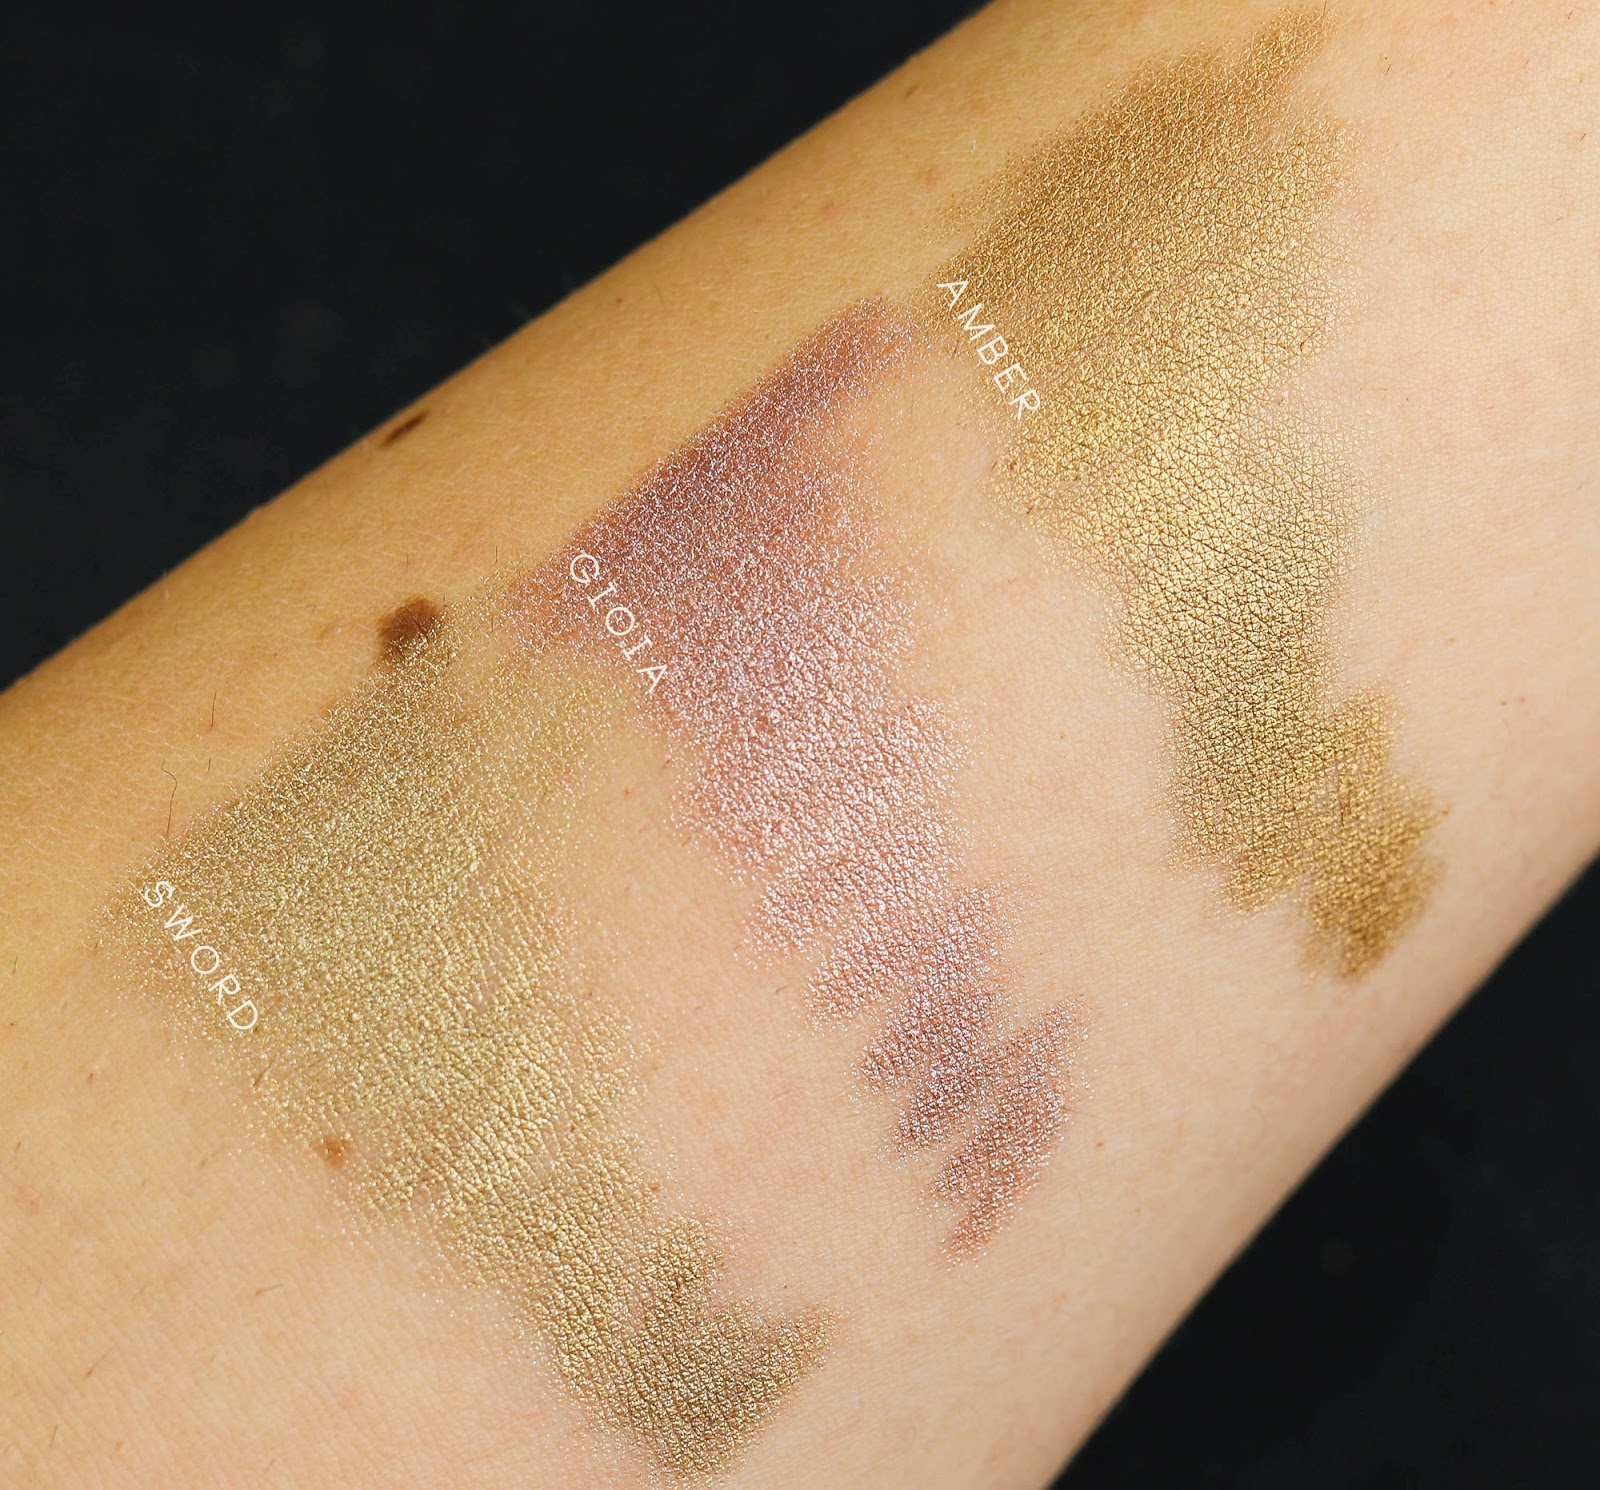 Neve Neogothic Sword swatch review